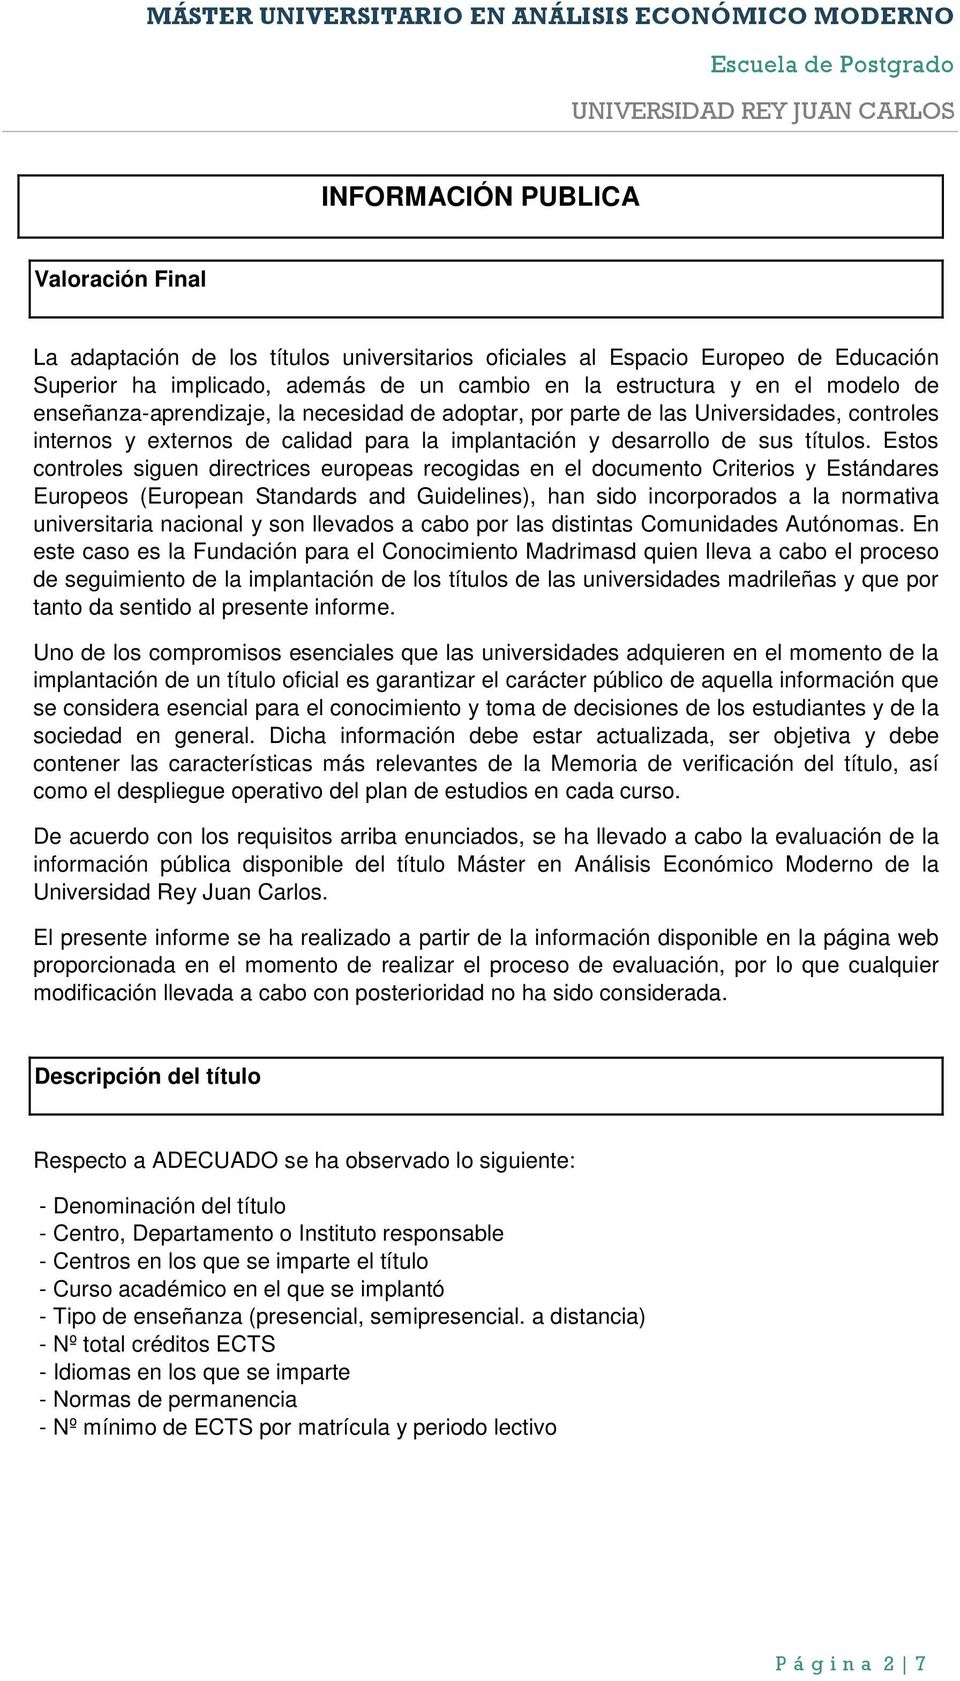 Estos controles siguen directrices europeas recogidas en el documento Criterios y Estándares Europeos (European Standards and Guidelines), han sido incorporados a la normativa universitaria nacional